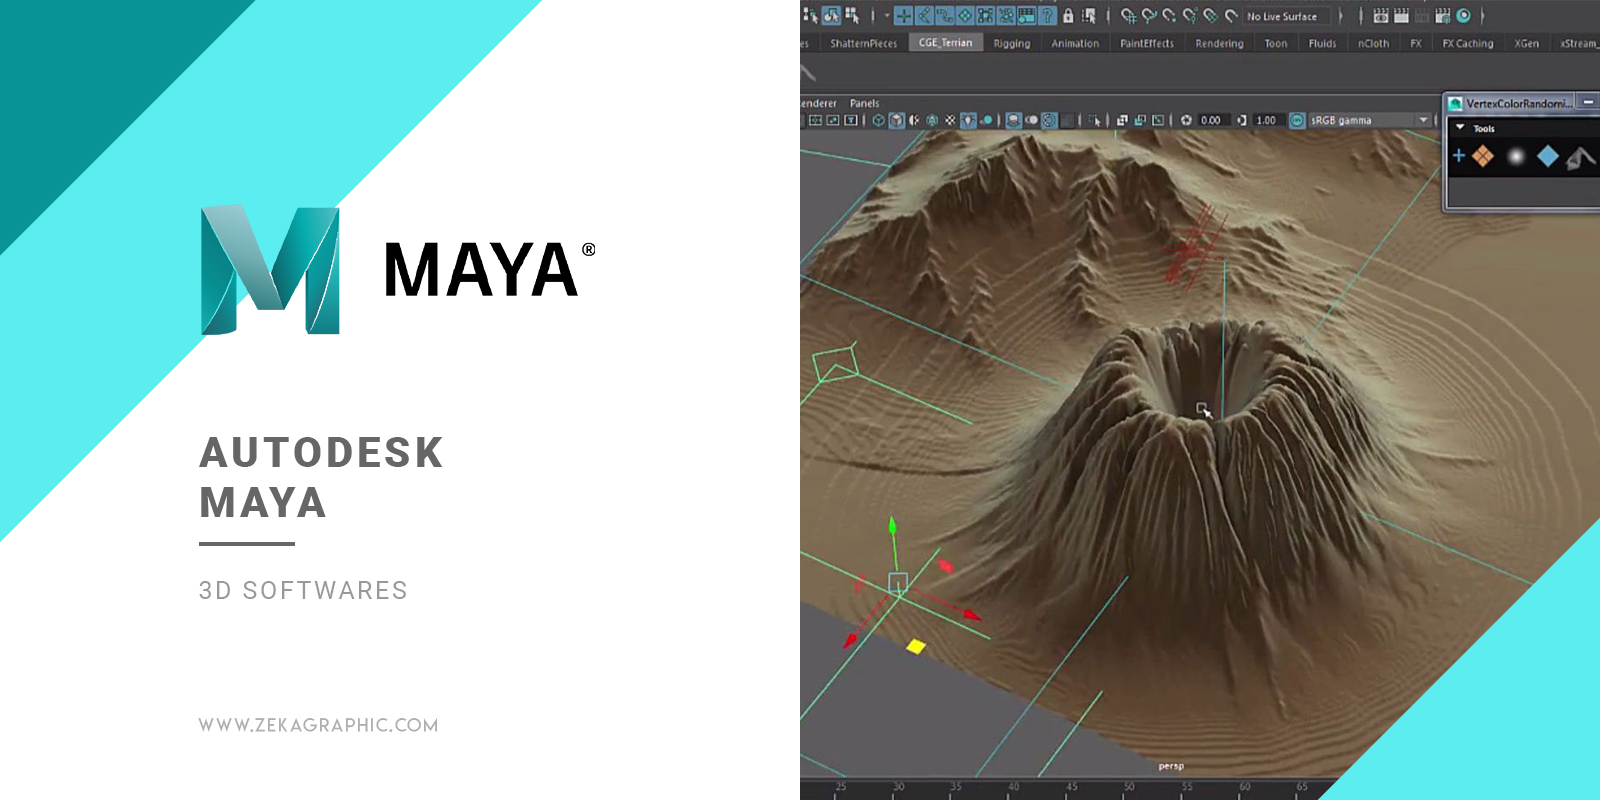 Autodesk Maya 3D Software for Graphic Design